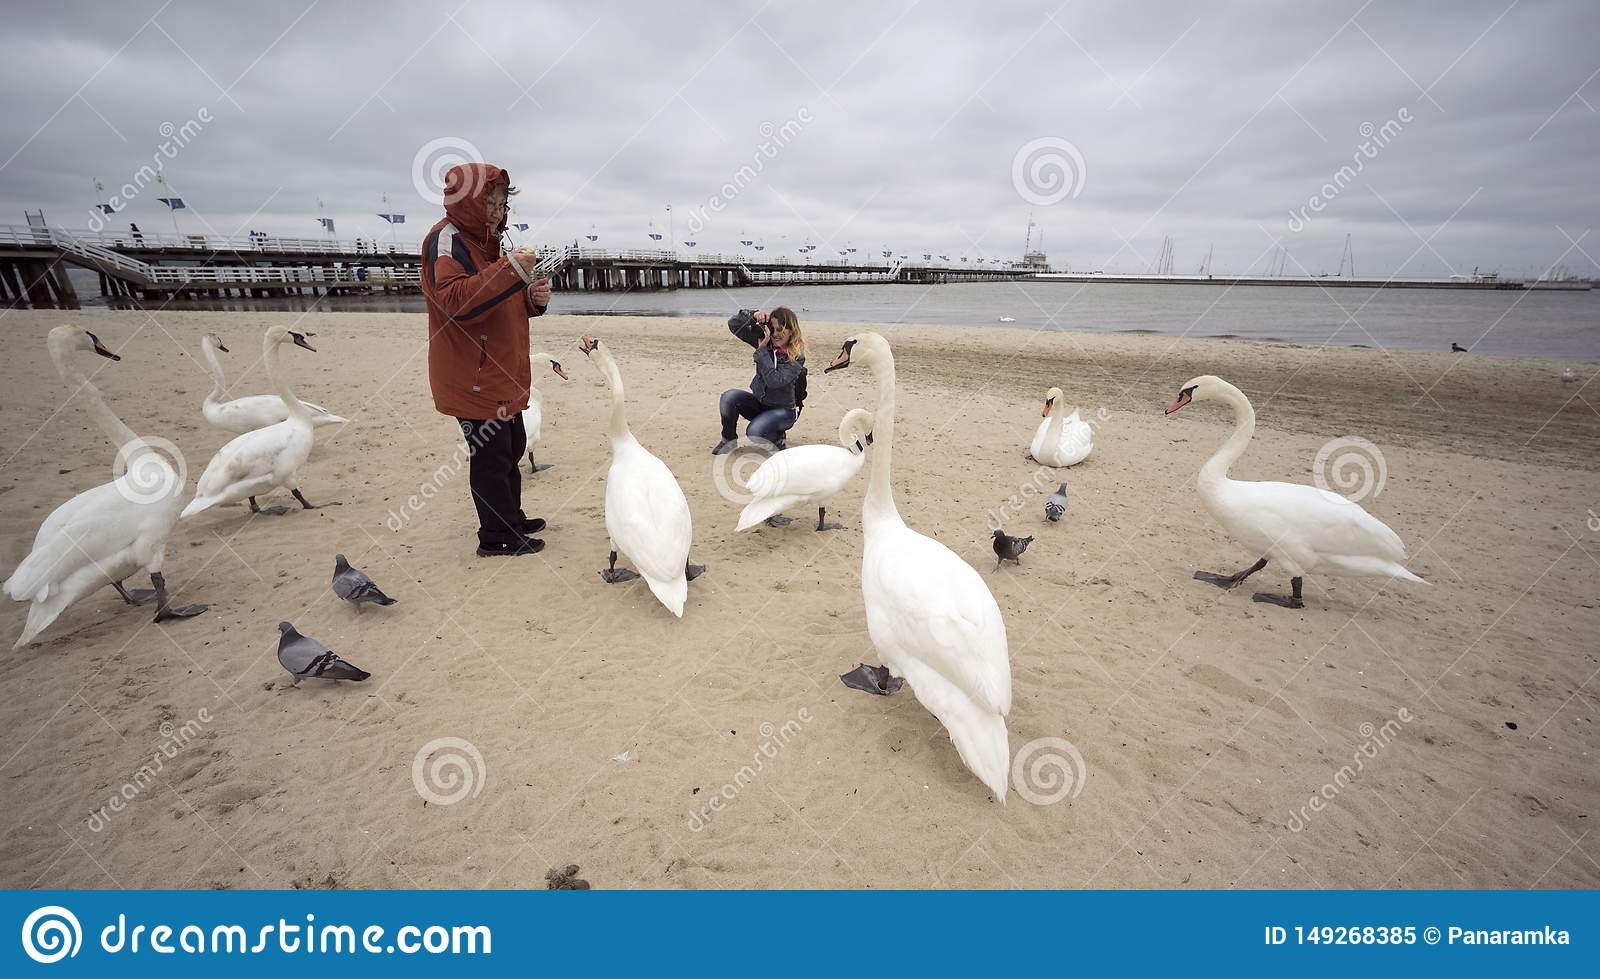 People and Swans in Sopot on the beach